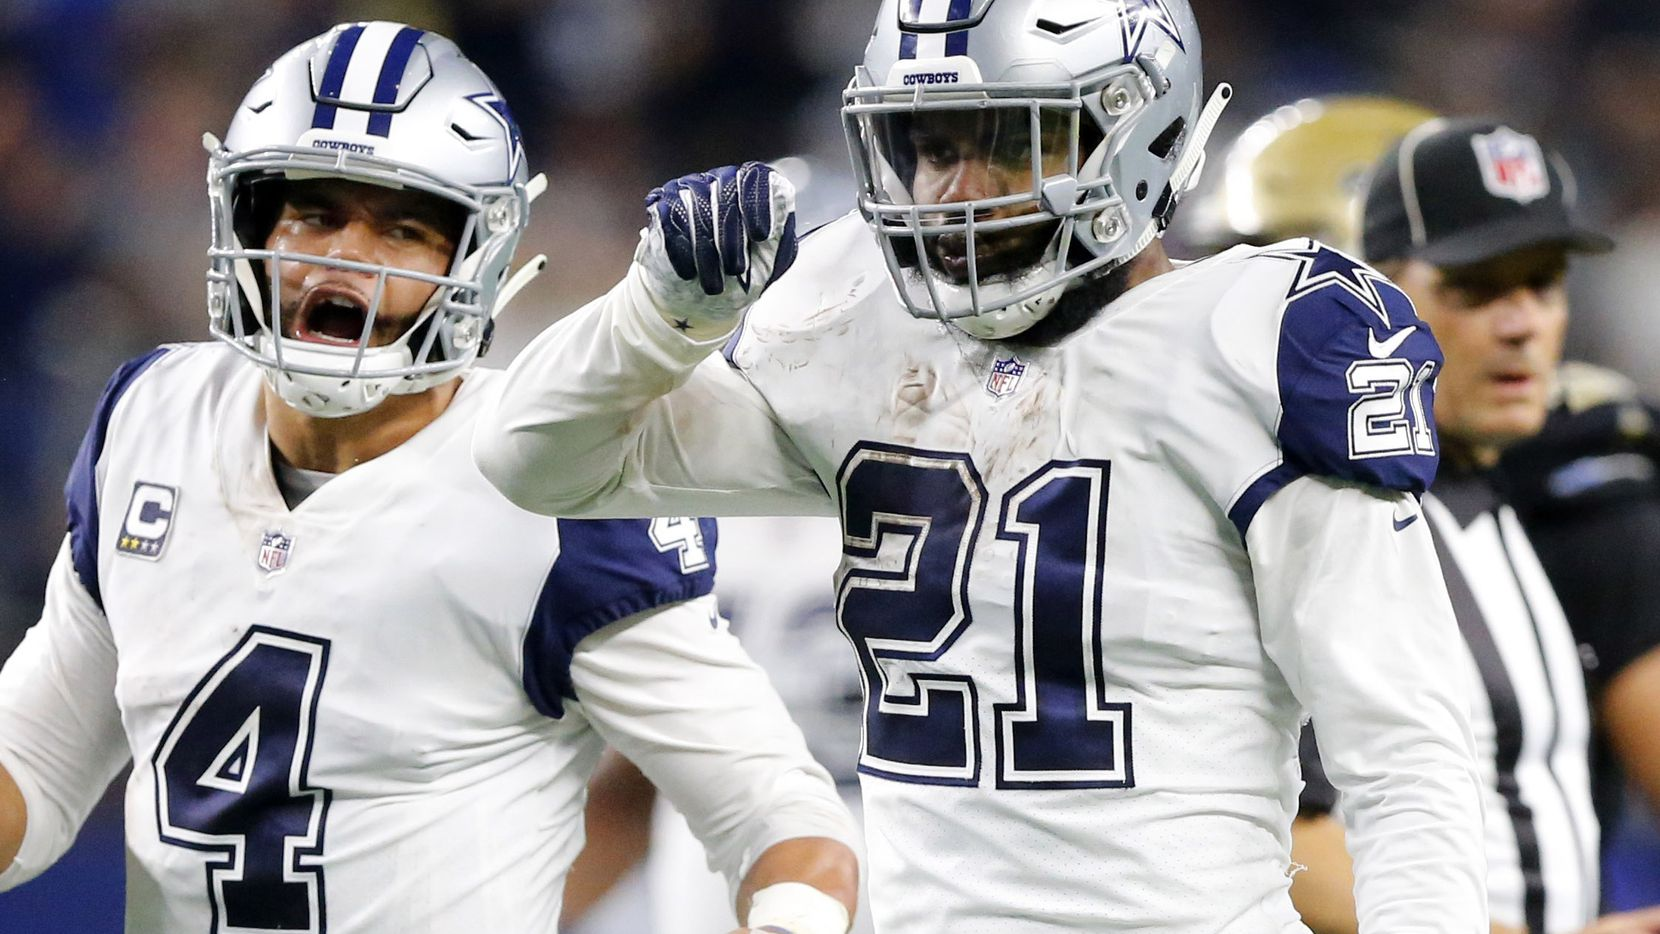 Dallas Cowboys running back Ezekiel Elliott (21) cel;rates his big final drive run with quarterback Dak Prescott (4) in the fourth quarter at AT&T Stadium in Arlington, Texas, Thursday, November 29, 2018. The Cowboys pulled out a 13-10 win. (Tom Fox/The Dallas Morning News)